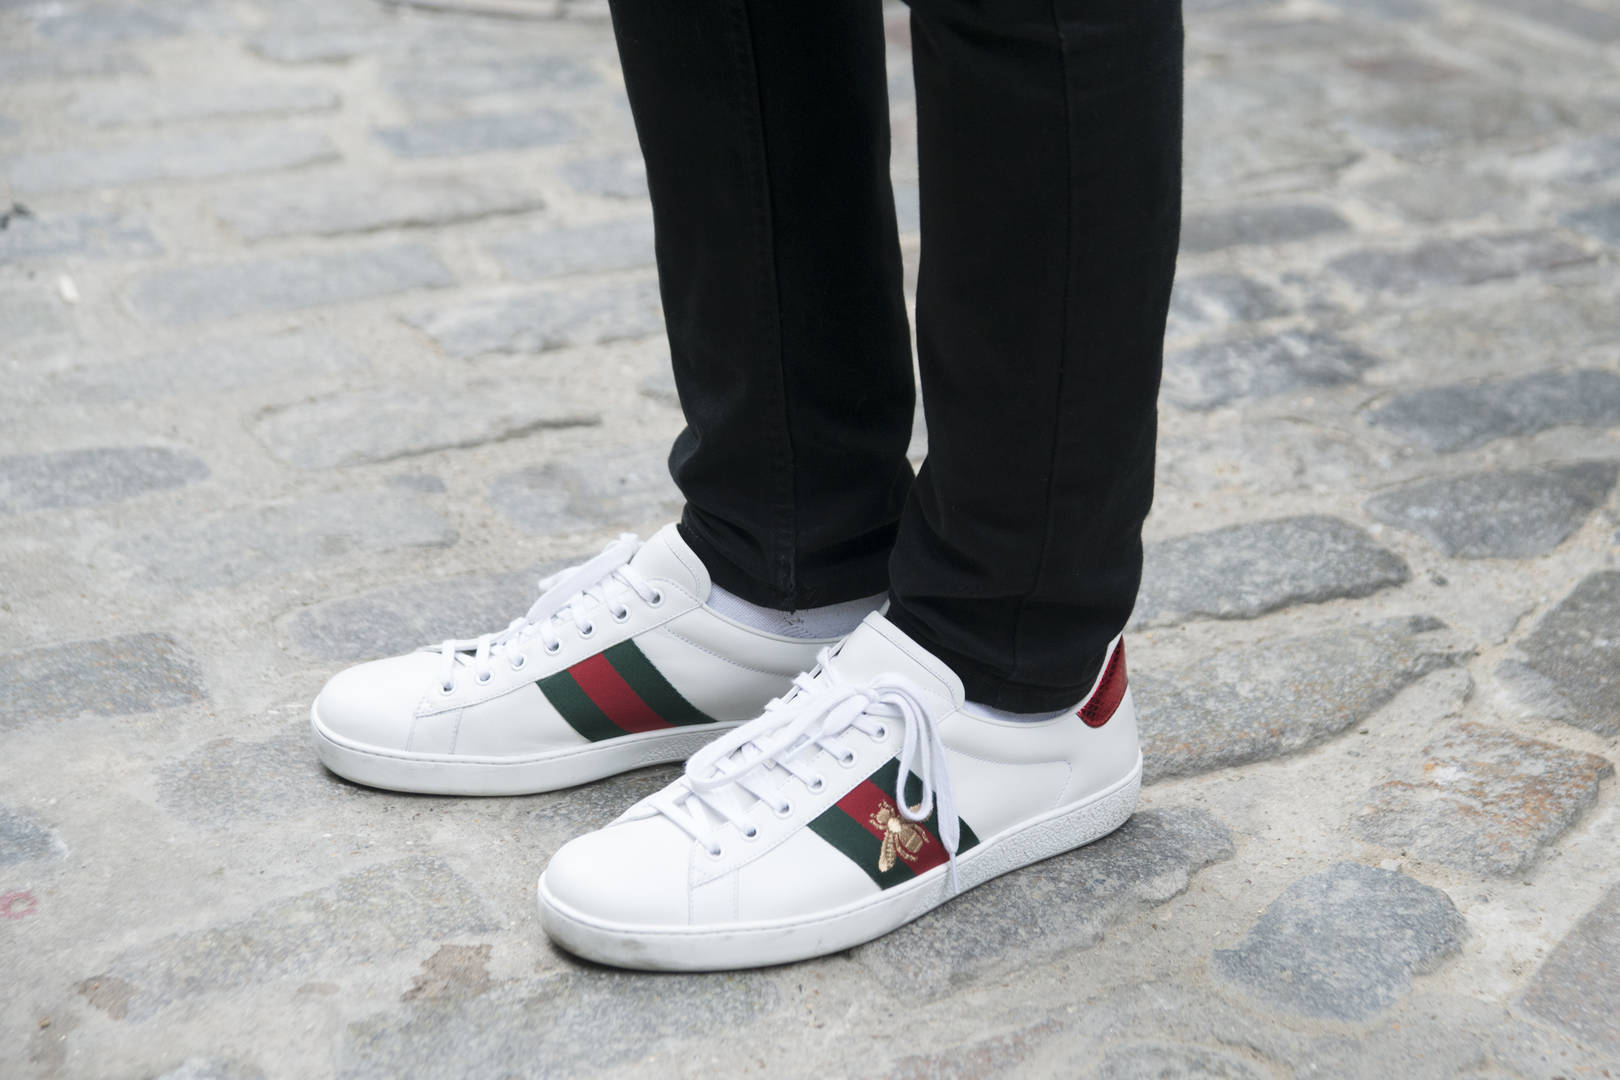 ab07d7051ee Gucci Is Selling Purposely Dirty Sneakers For Over  900